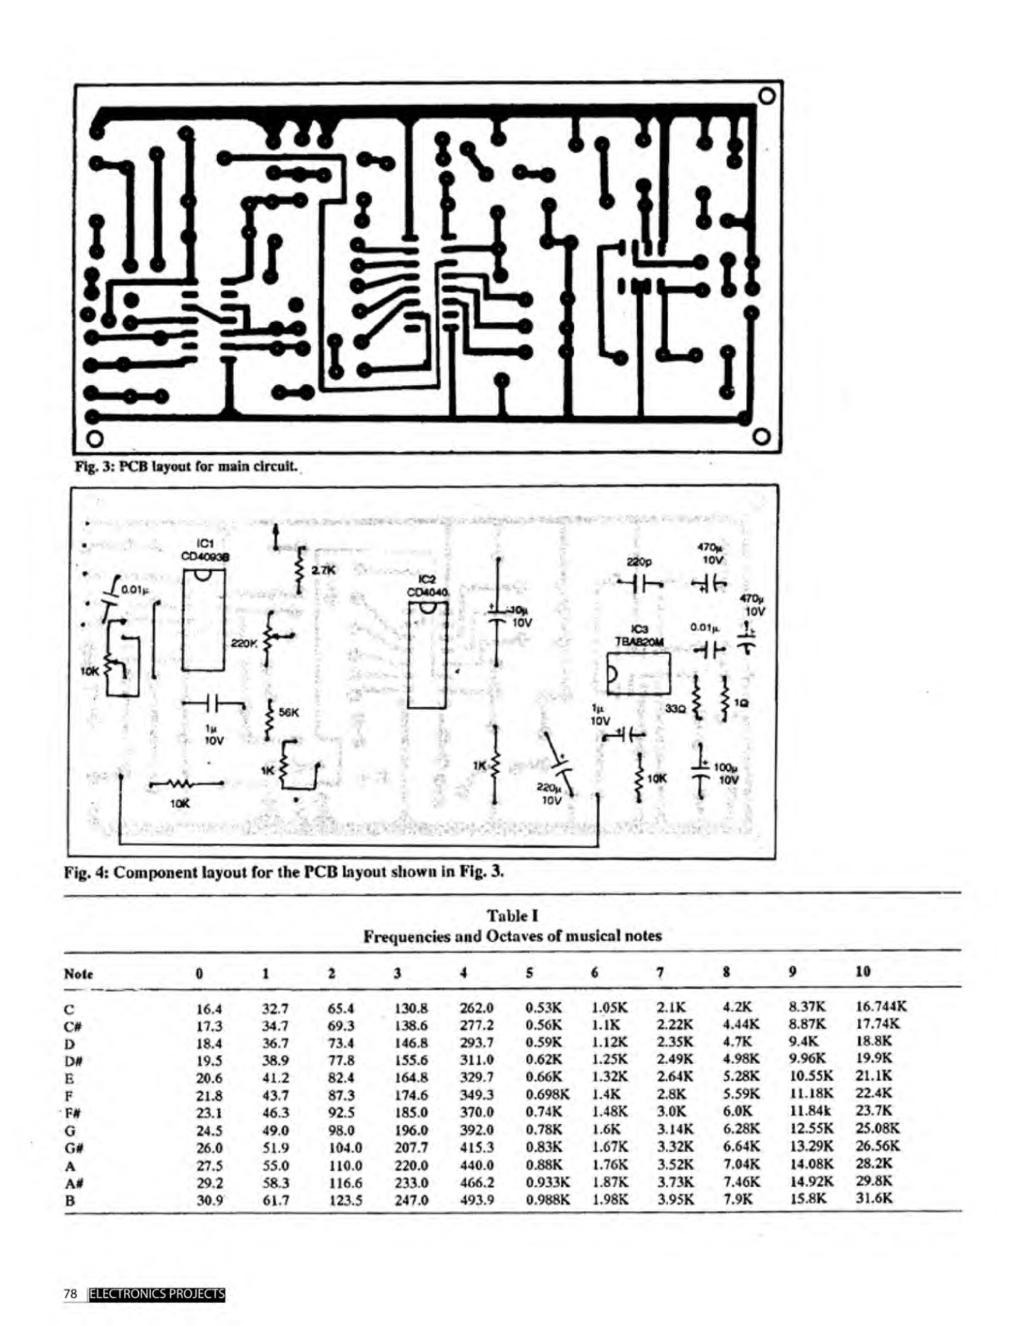 A Compilation Of 102 And Circuit Ideas For Construction Projects Fig 2 Triple Gang Way Light Switch 3 Pcb Layout Main 4 Component